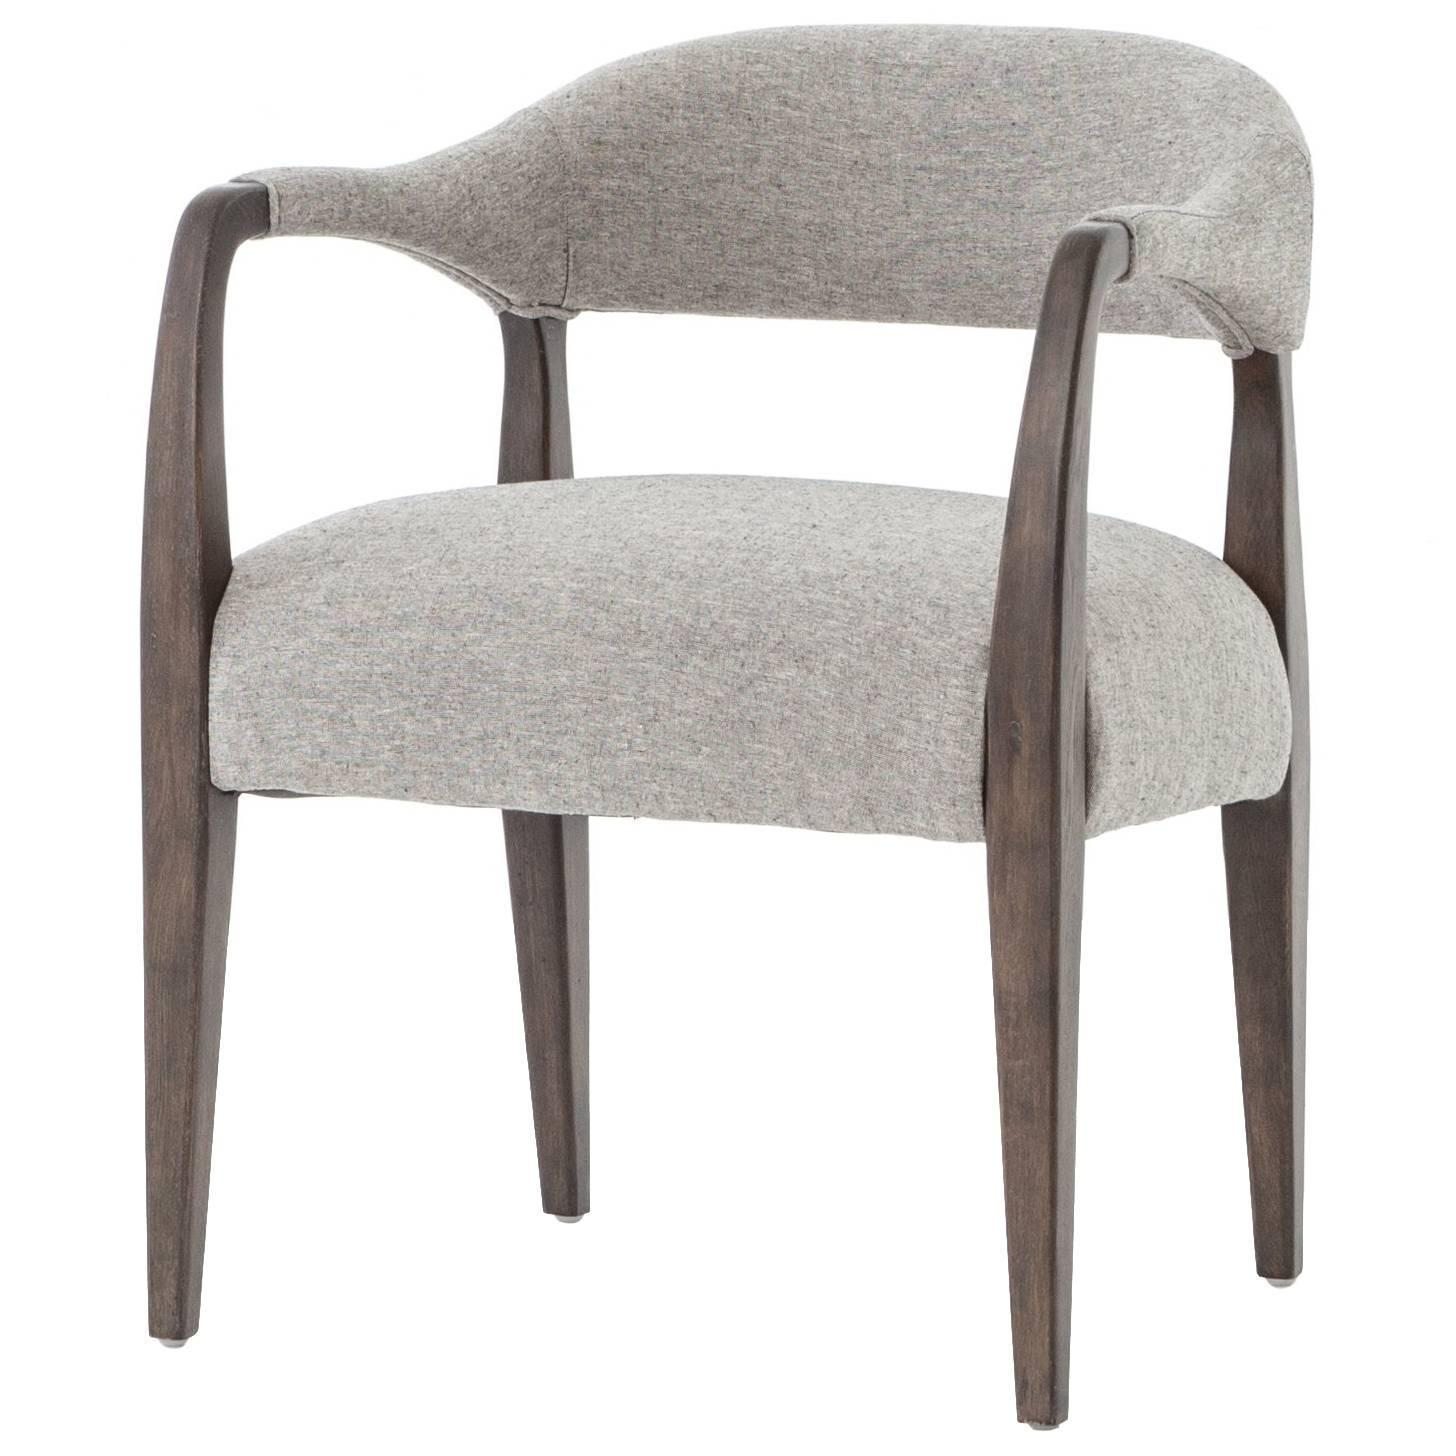 Upholstered dining chairs with arms for sale at 1stdibs for Upholstered arm dining chairs